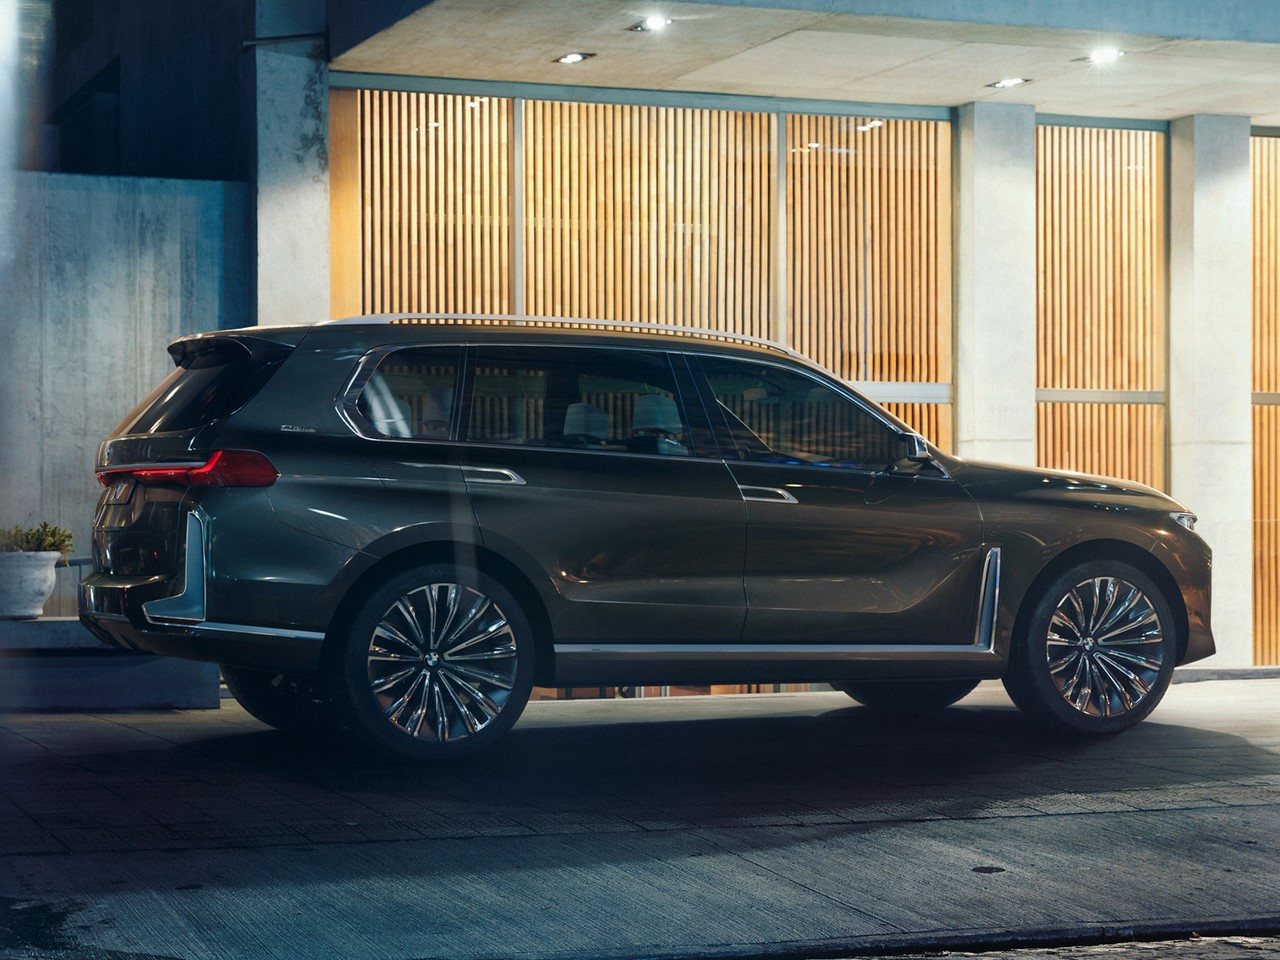 BMW Concept X7 rear three quarters leaked image